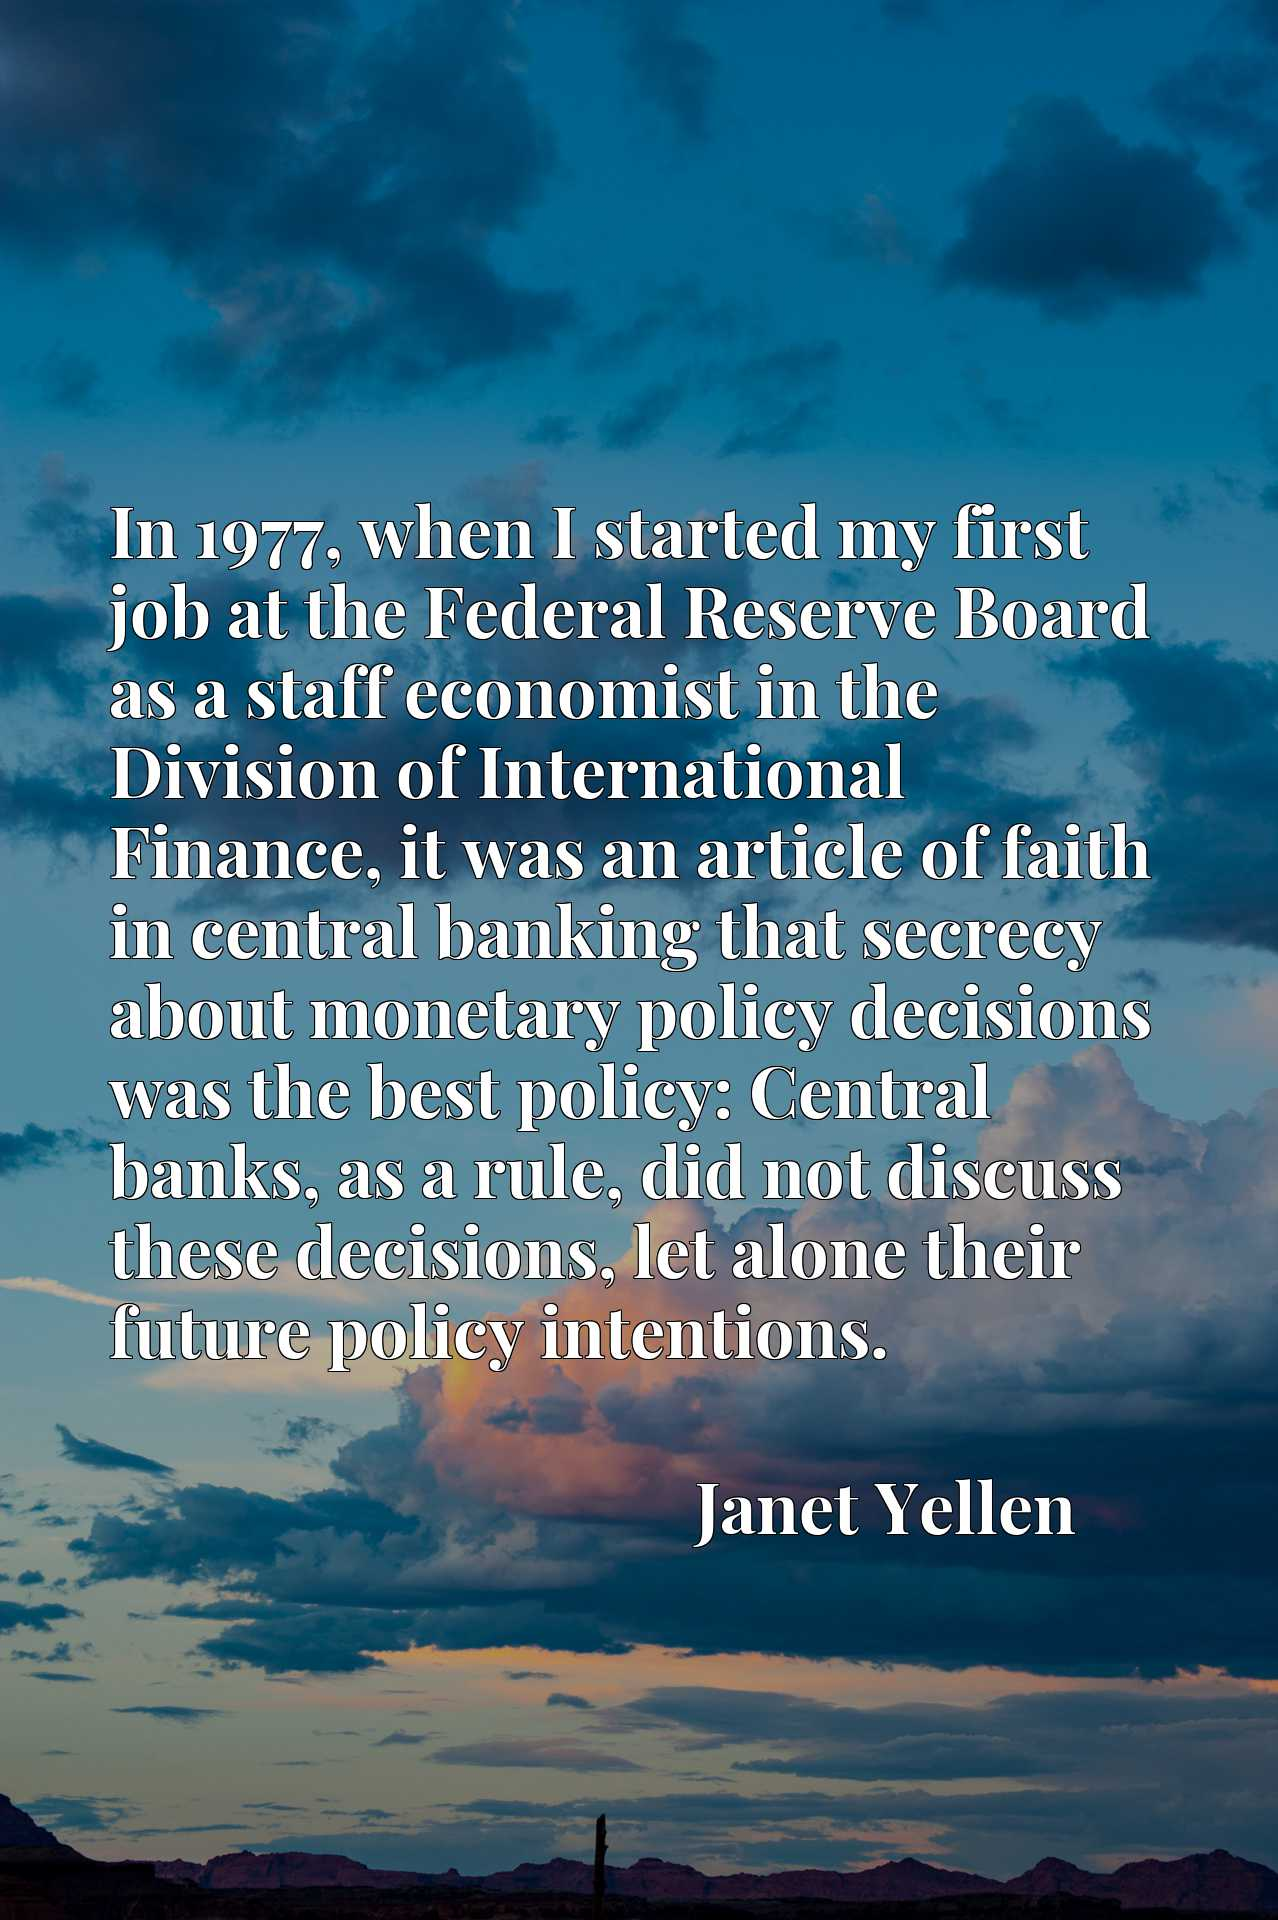 In 1977, when I started my first job at the Federal Reserve Board as a staff economist in the Division of International Finance, it was an article of faith in central banking that secrecy about monetary policy decisions was the best policy: Central banks, as a rule, did not discuss these decisions, let alone their future policy intentions.